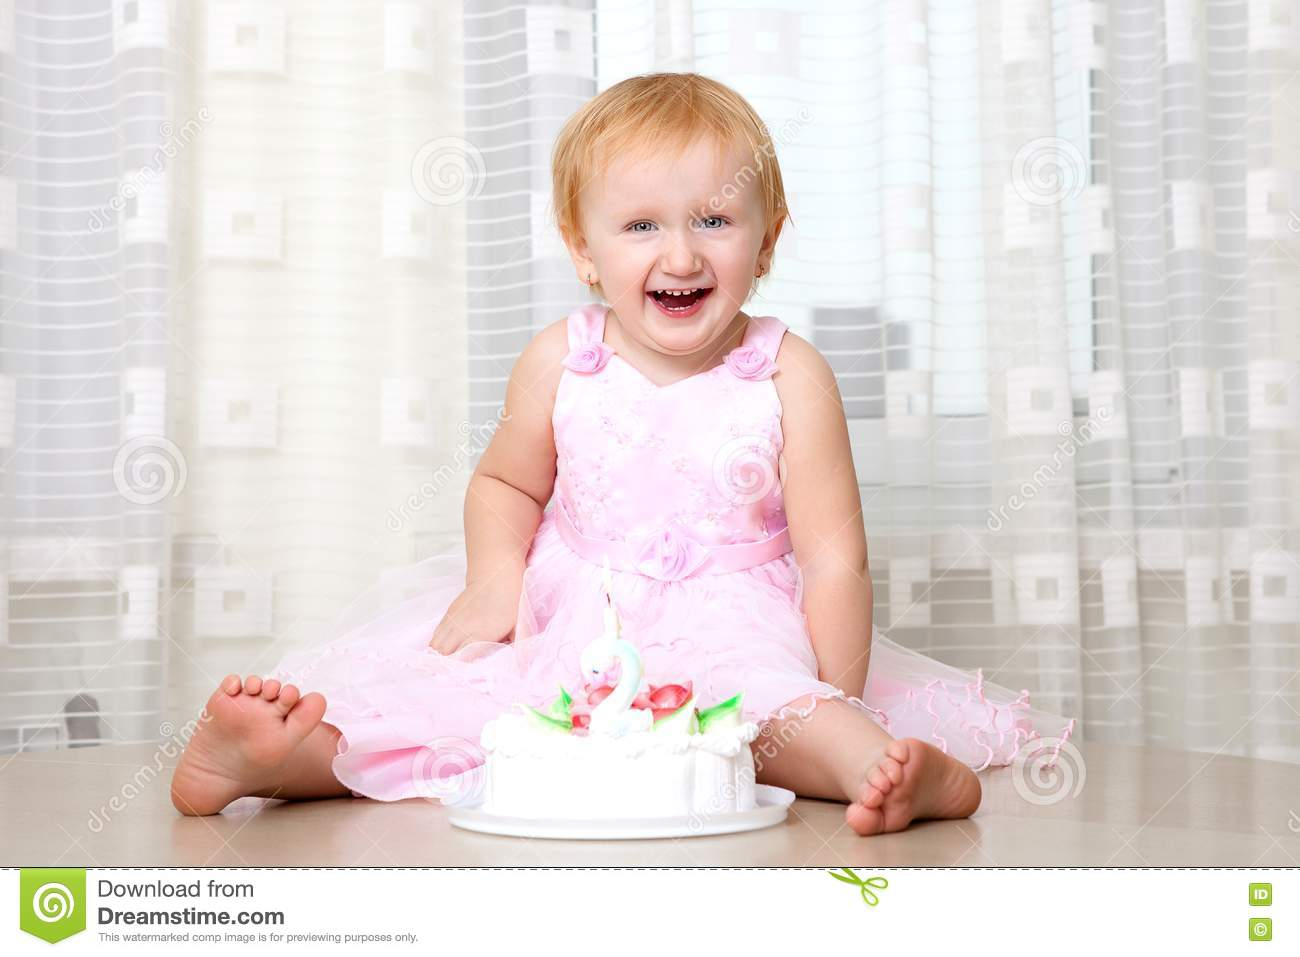 Baby Eating Cake Royalty Free Stock Photo - Image: 19219395